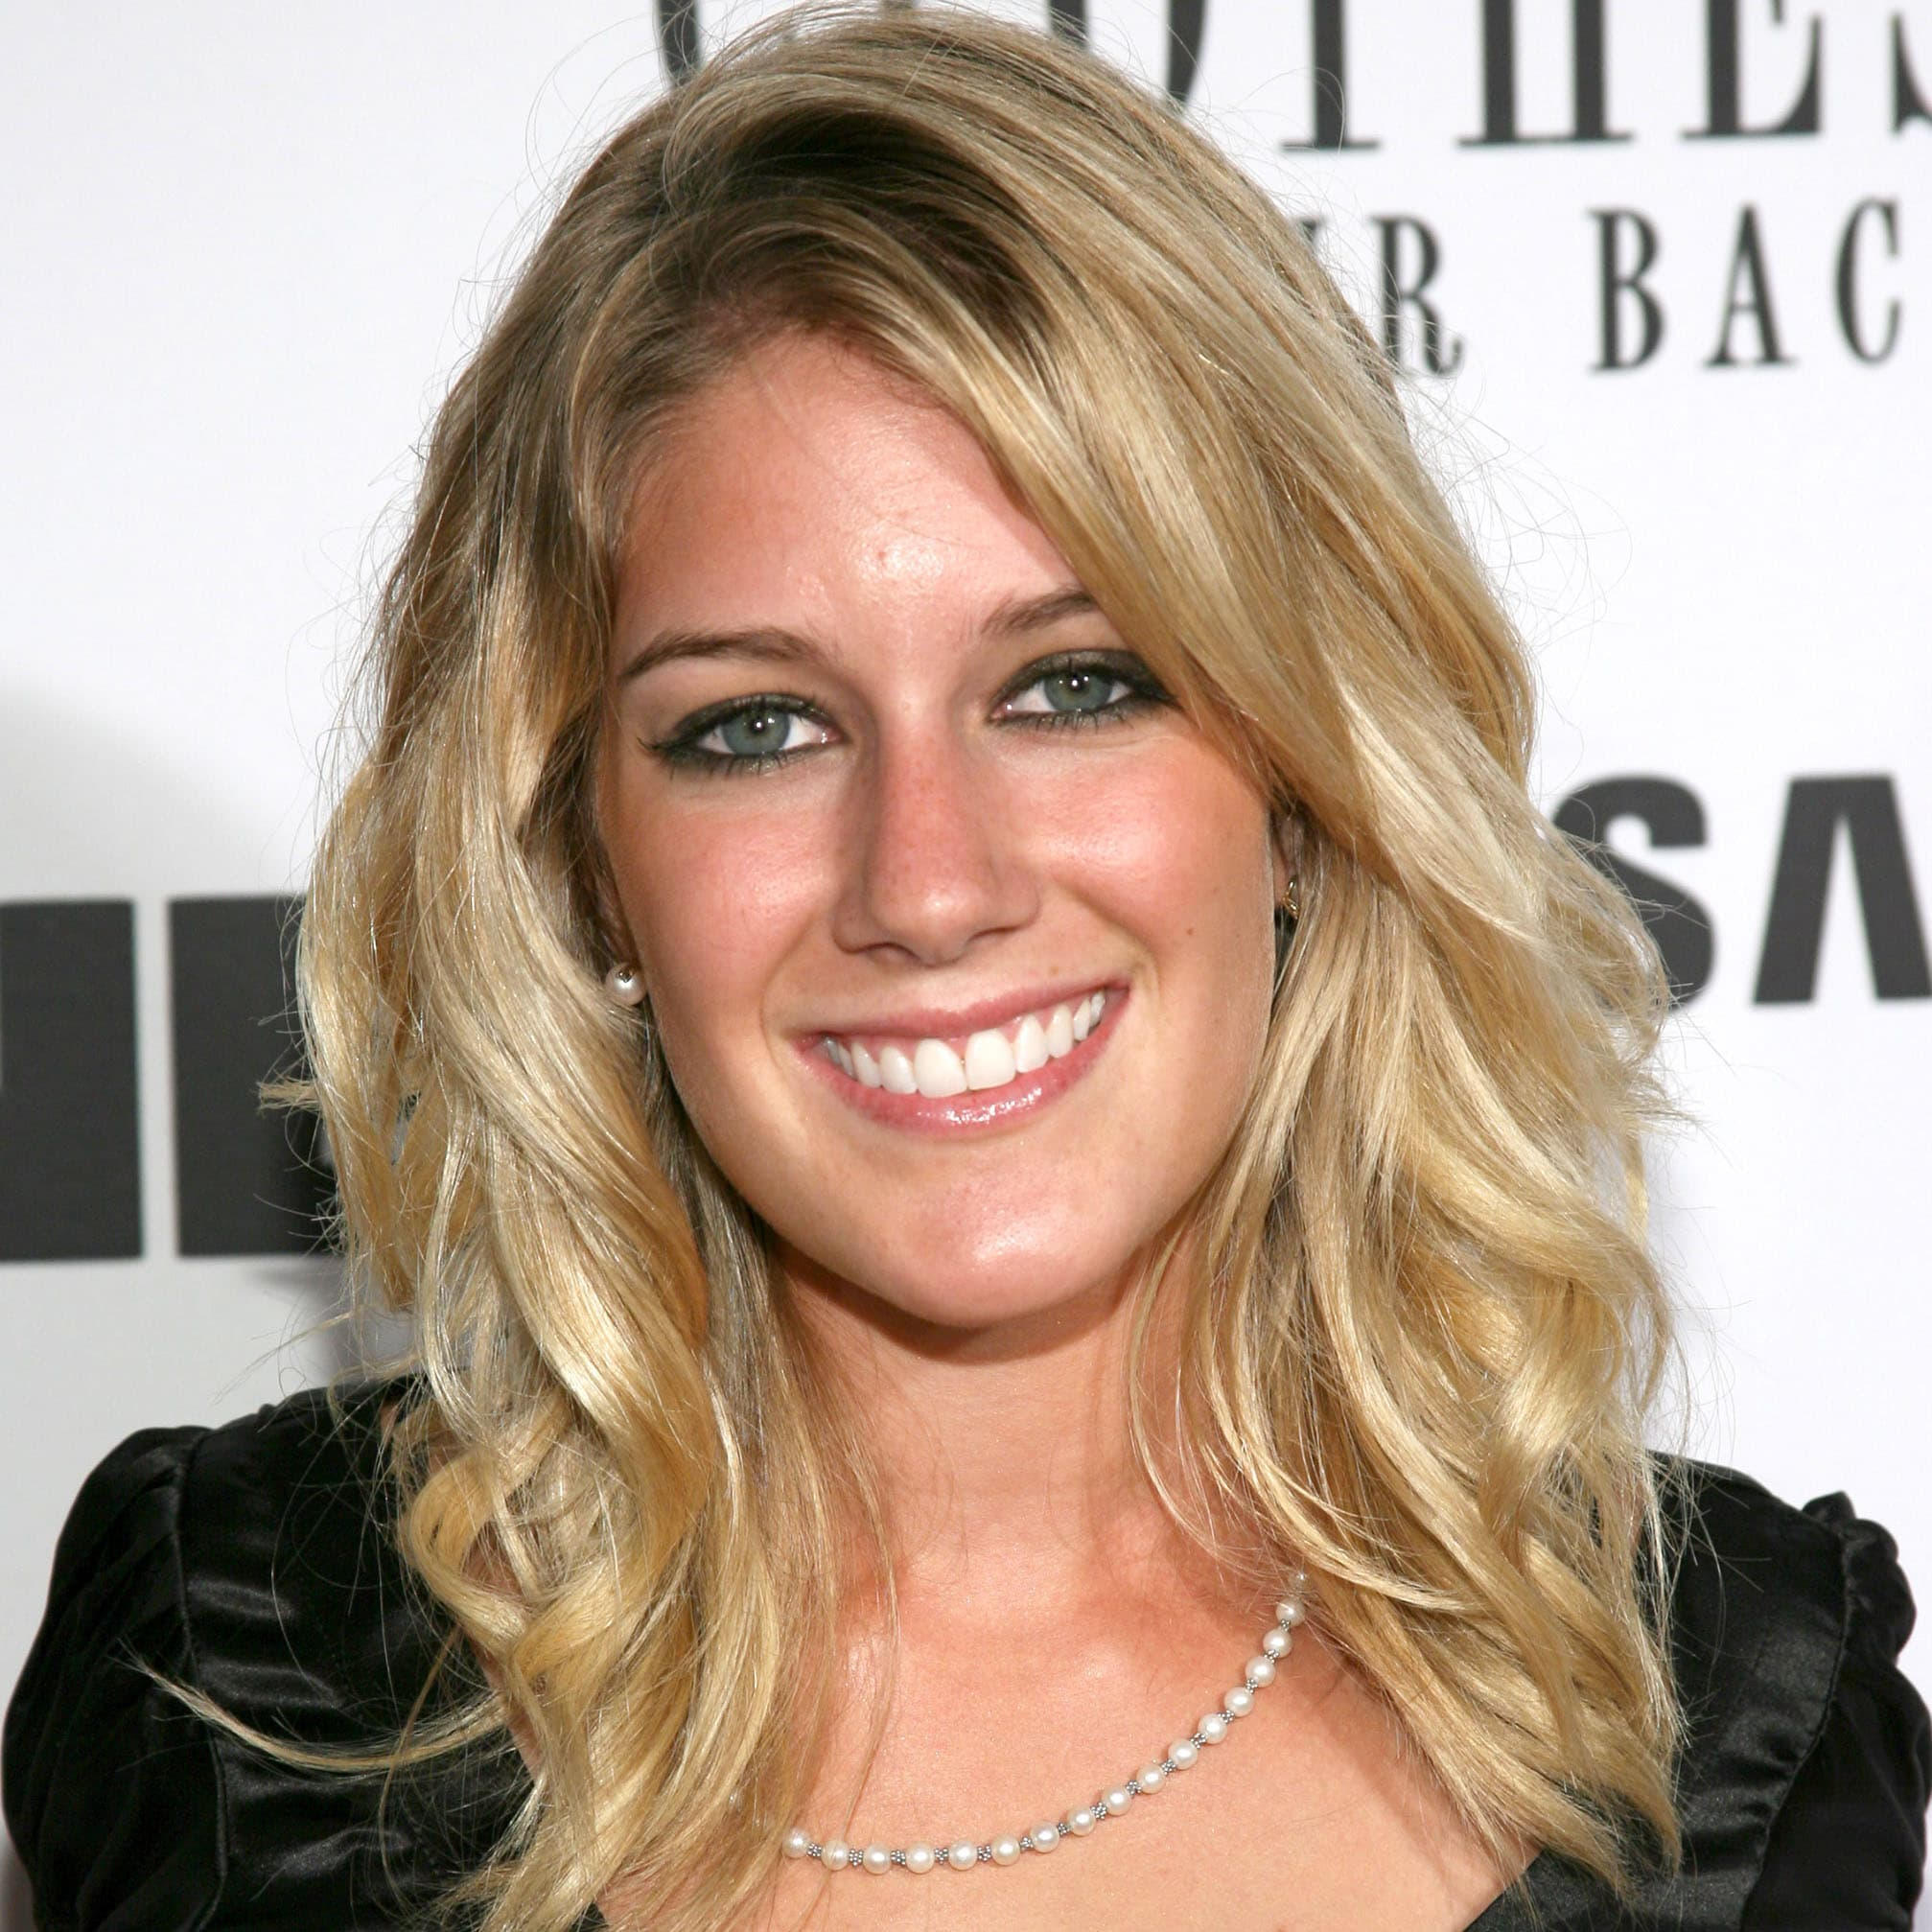 Heidi From The Hills Before And After Plastic Surgery photo - 1